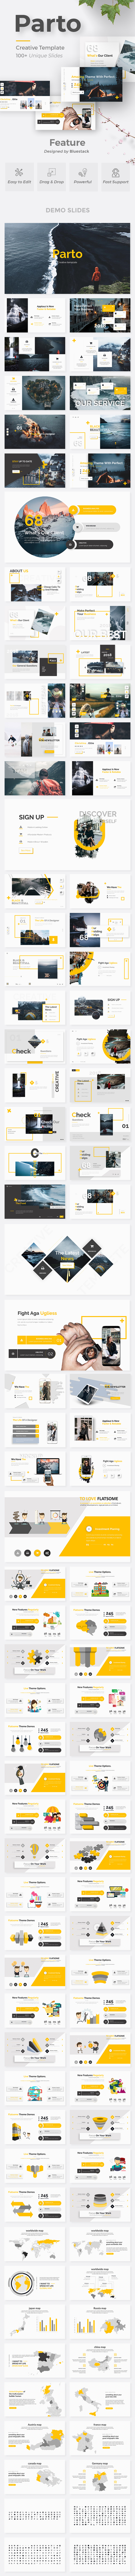 Parto Creative Keynote Template - Creative Keynote Templates